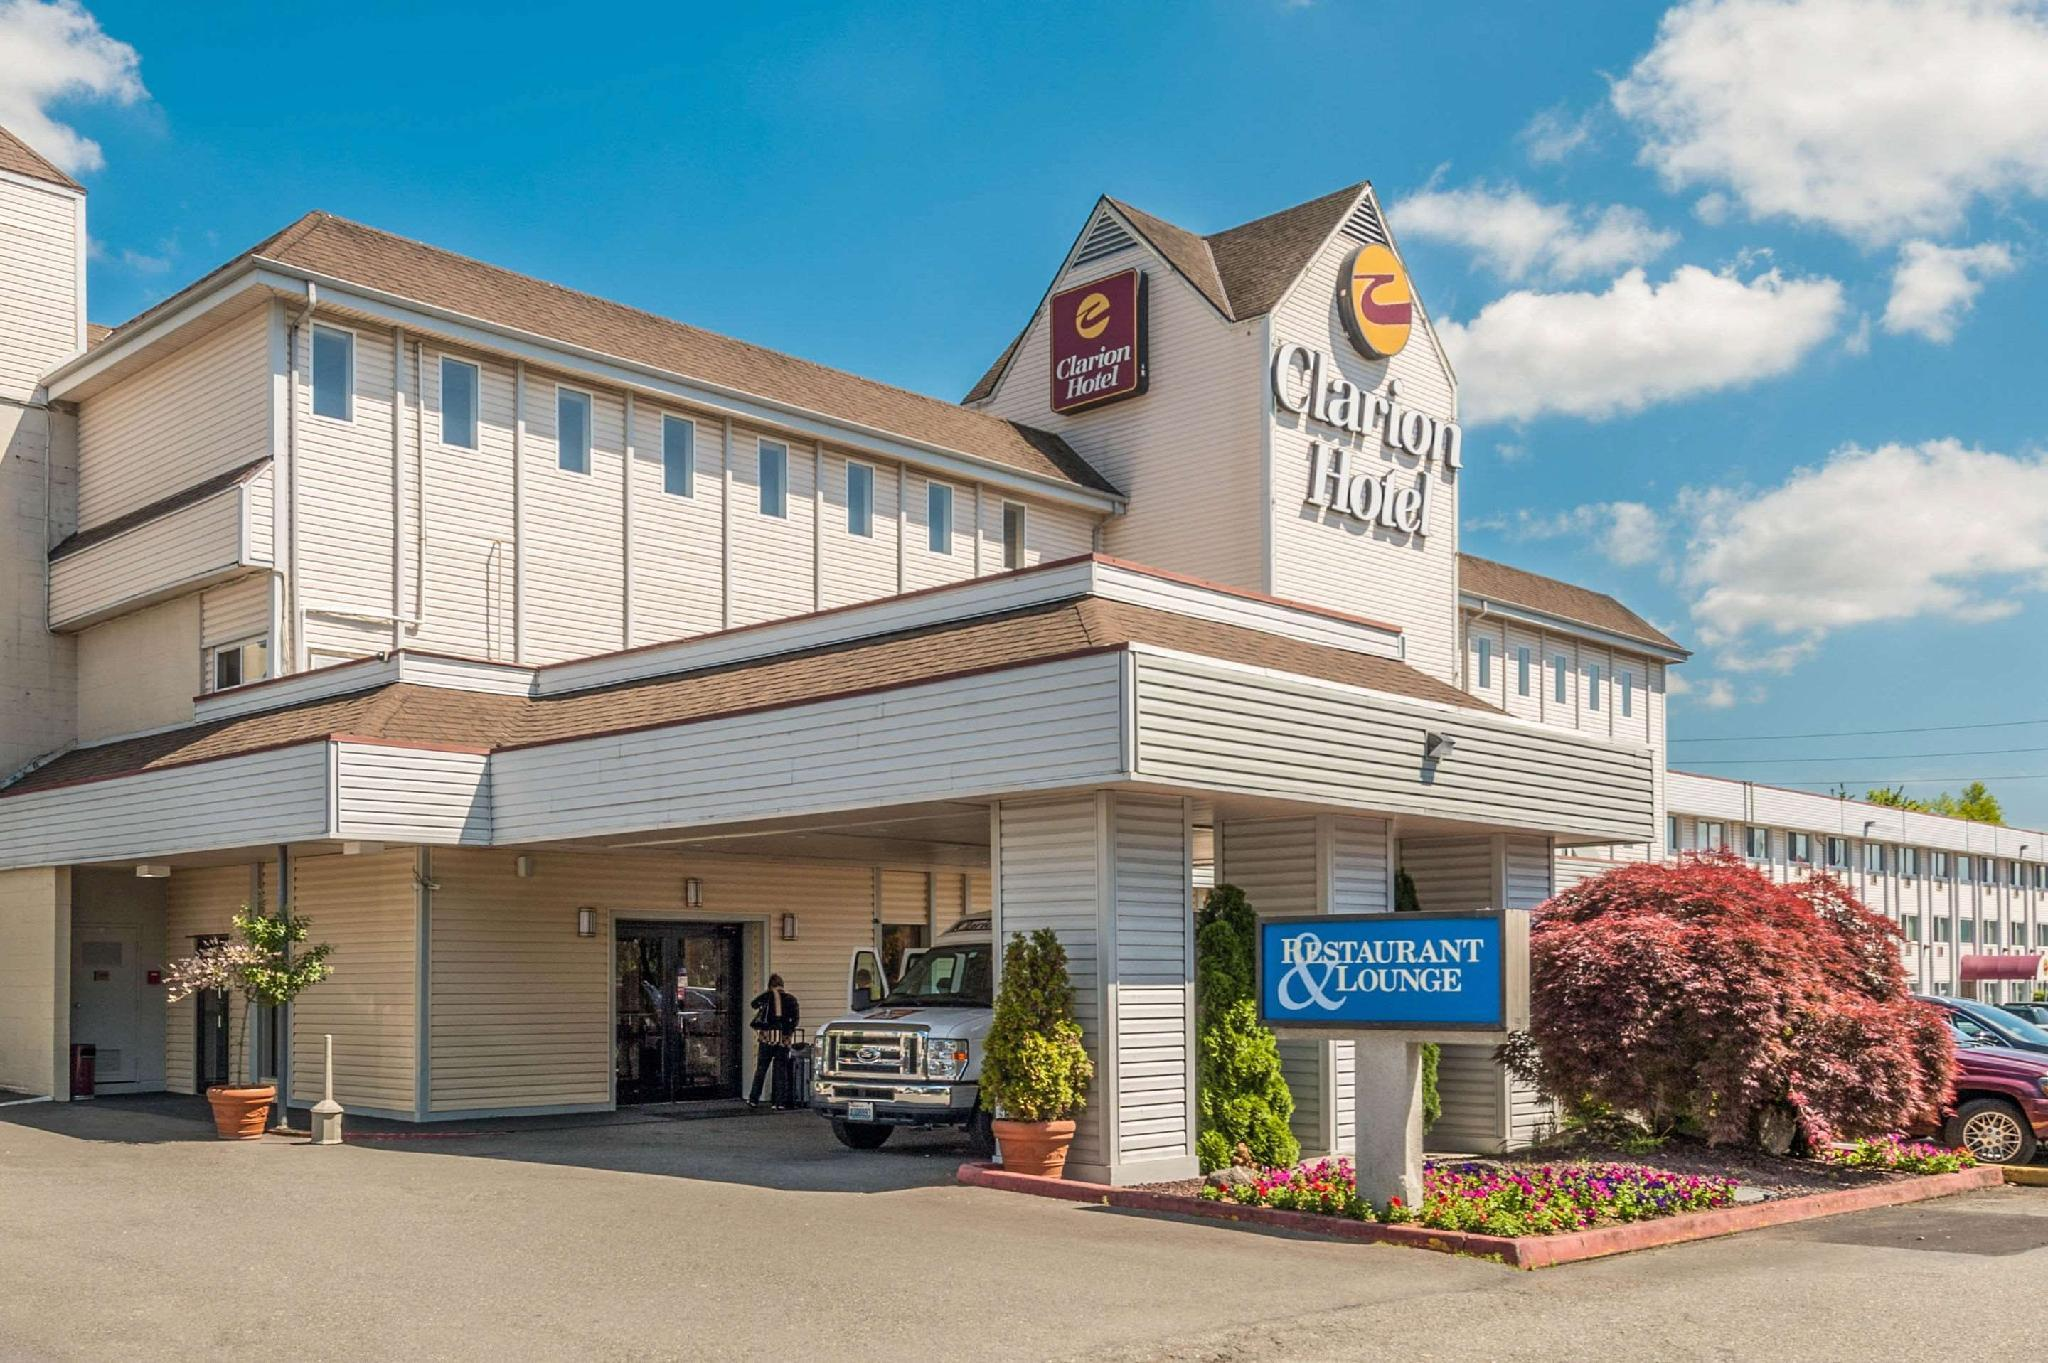 Clarion Hotel Seattle Airport image